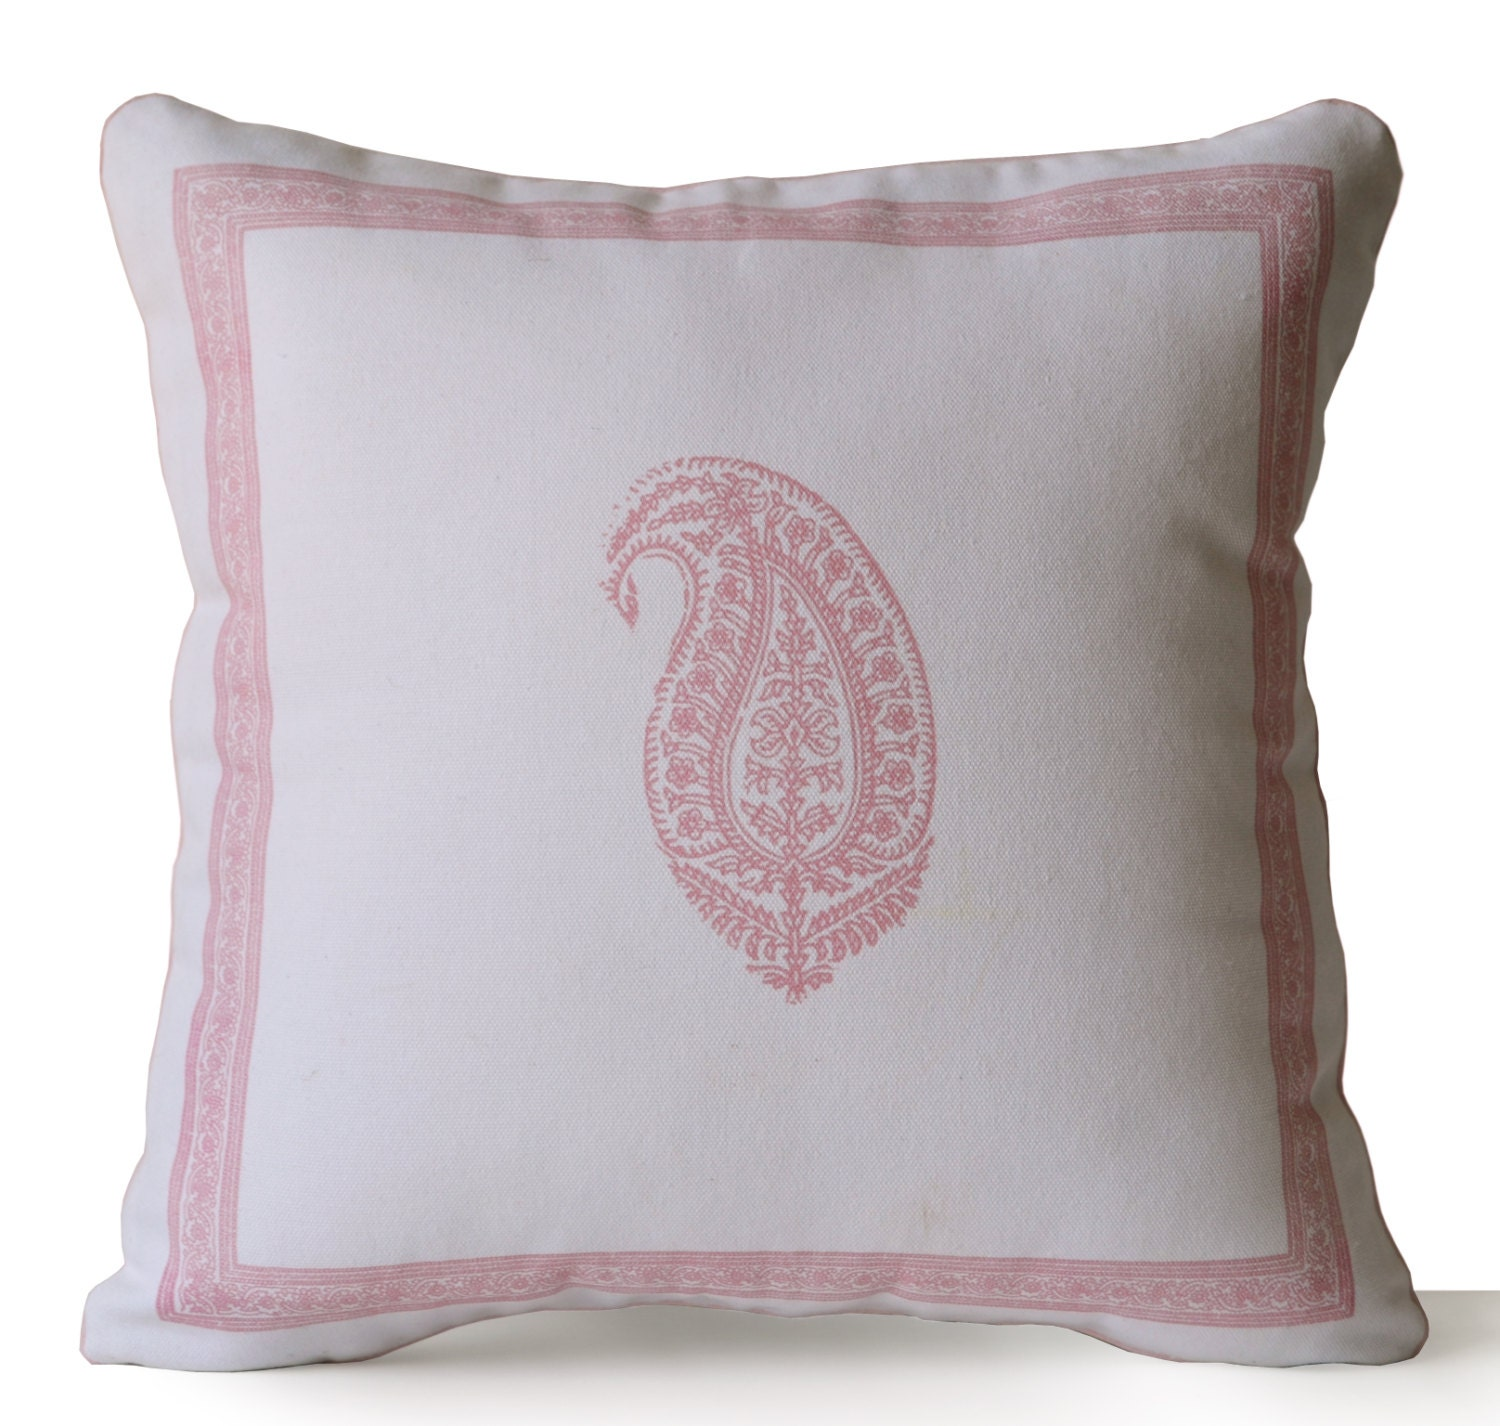 Decorative Pillow Ivory : Decorative Throw Pillow Ivory Cotton Pink Paisley Pillow Case